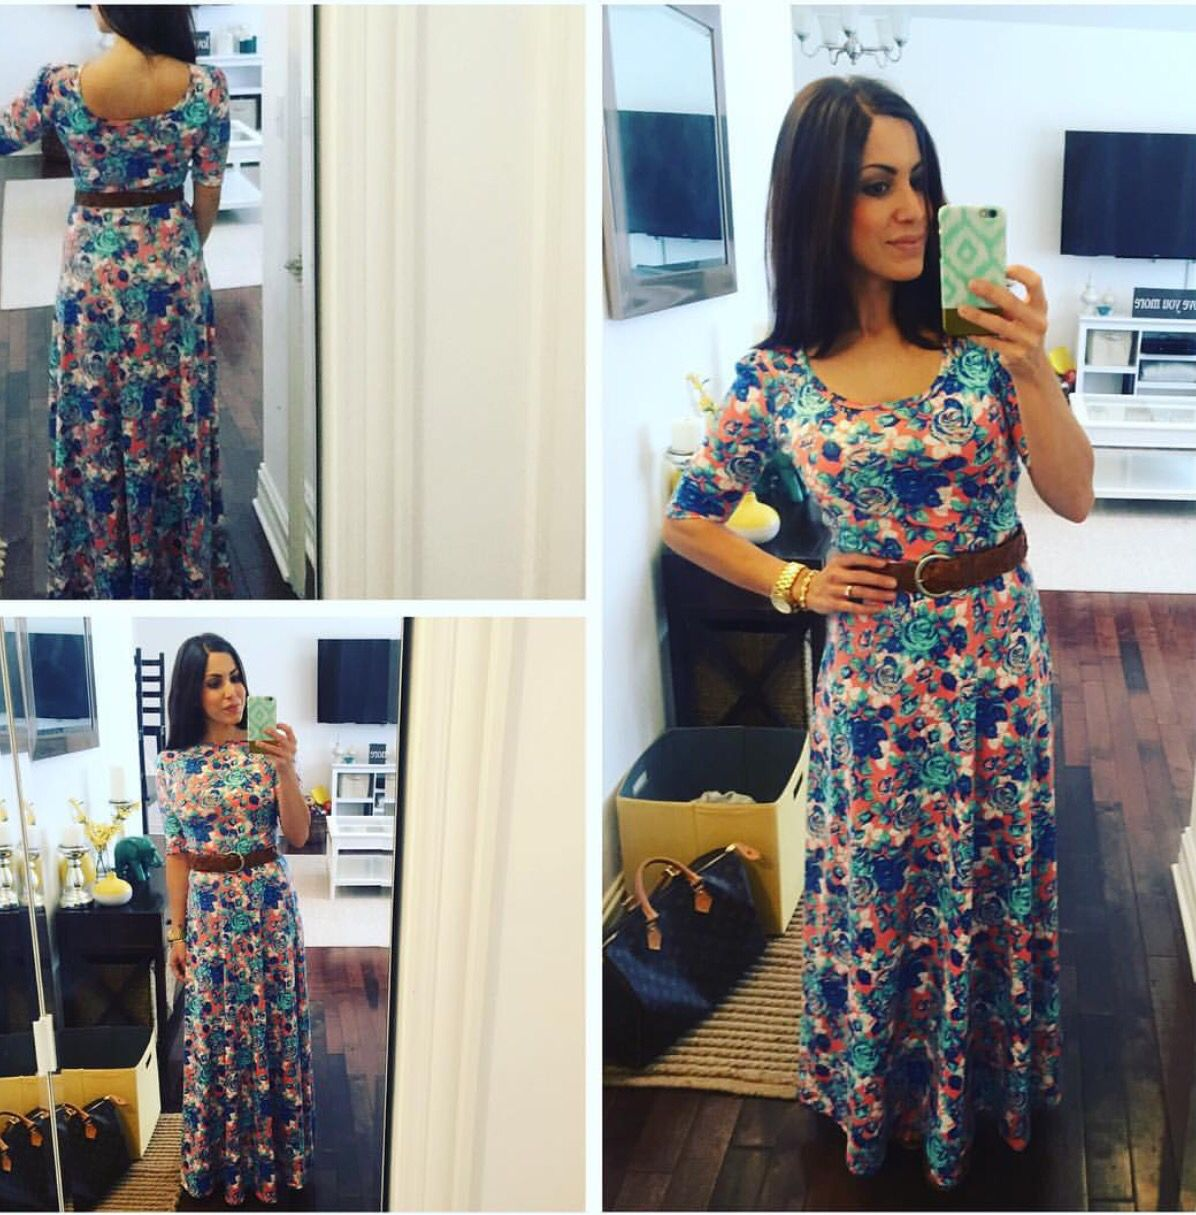 Styling an Ana | LuLaRoe Clothing | Pinterest | Brown and ...